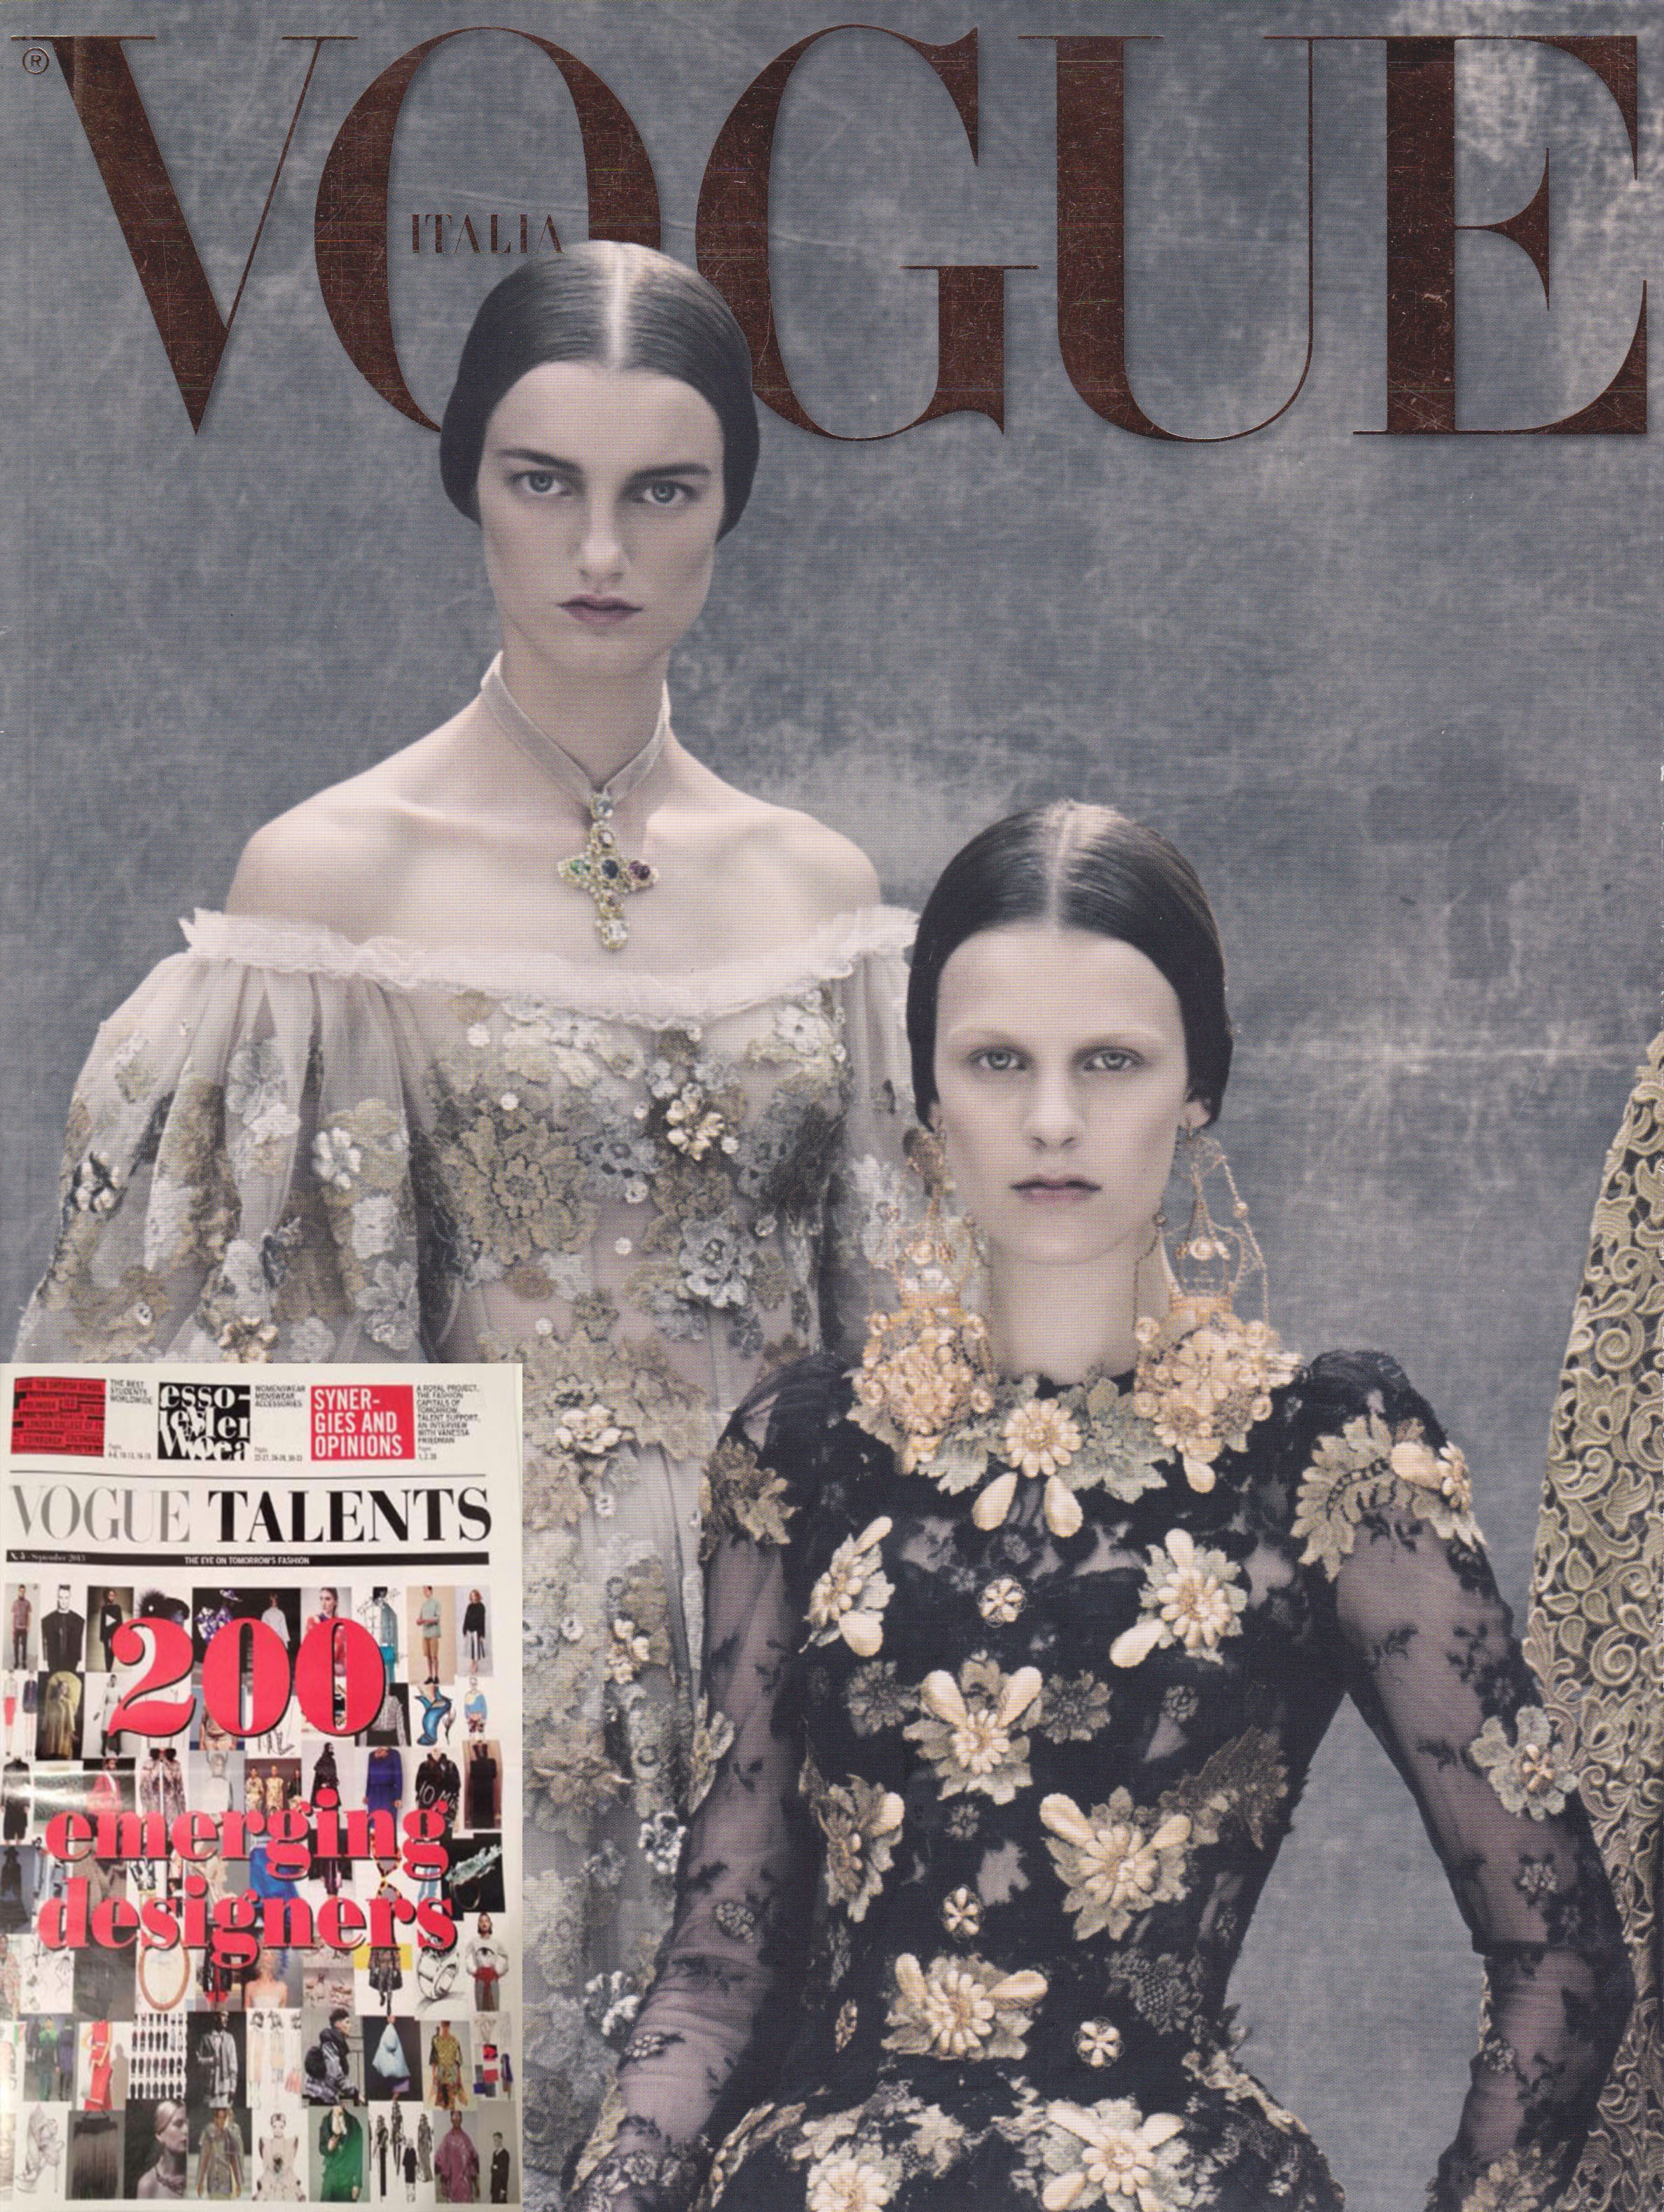 VOGUE ITALIA - NEW TALENT SEPTEMBER 2013